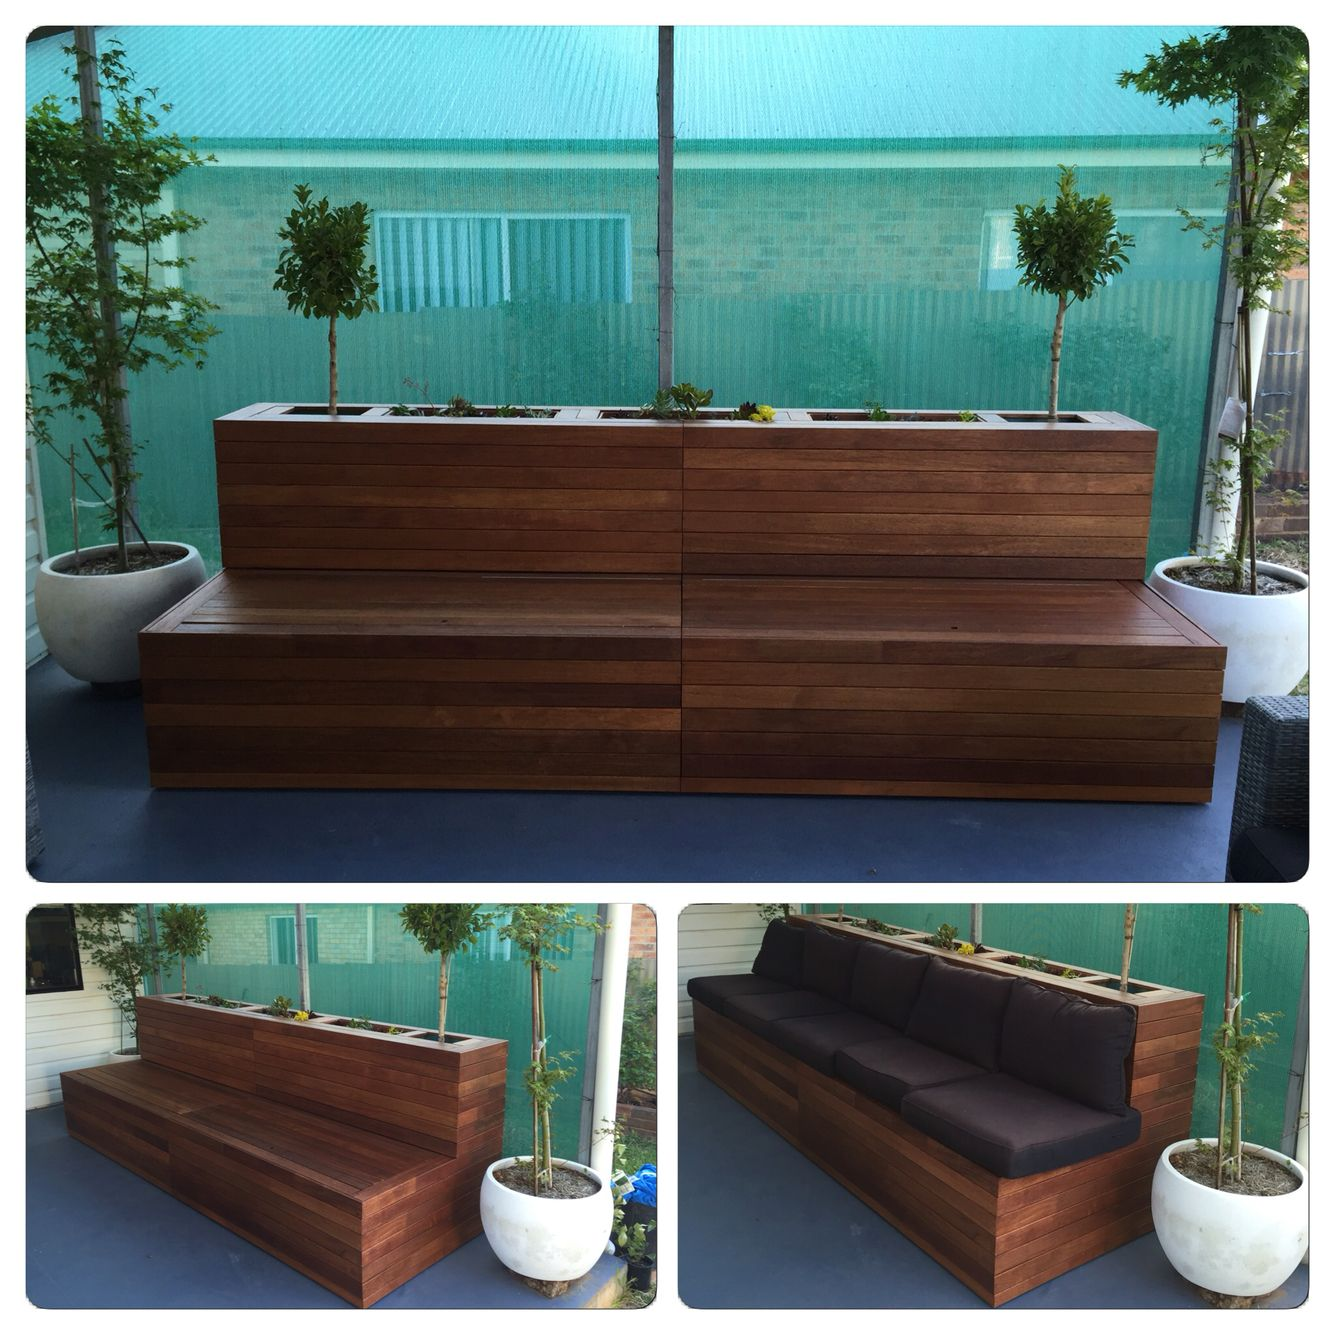 Storage Seat With Planter Box Wooden Bench Outdoor Corner Bench Seating Wooden Bench Seat